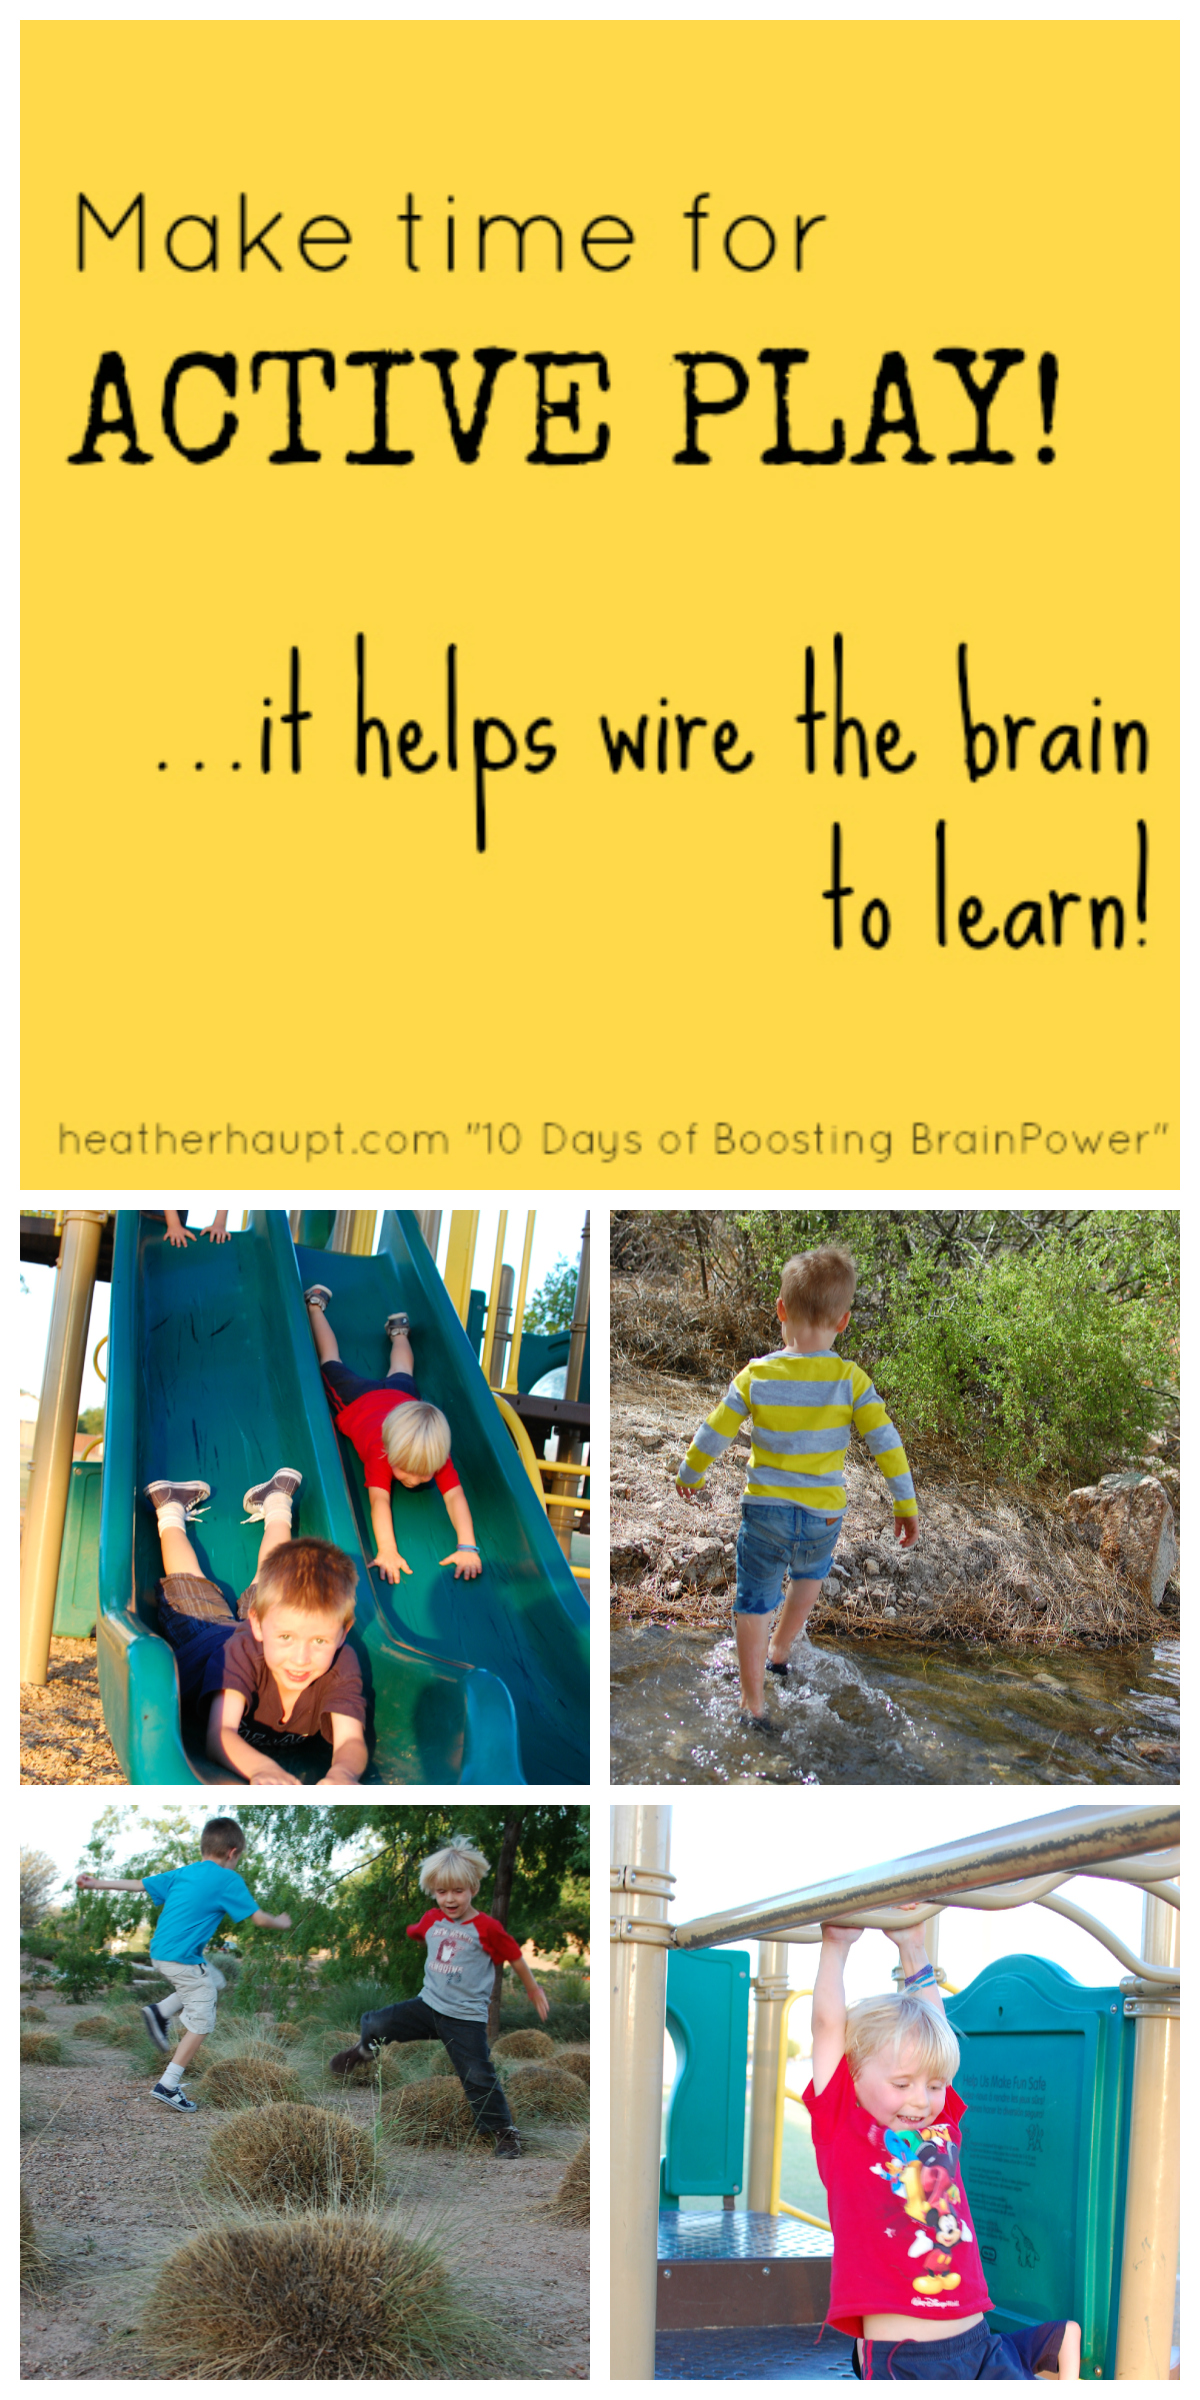 Active play promotes brain development!  It's not just fun, it is FUNdamental! {Day 5 of Boosting Brain Power}